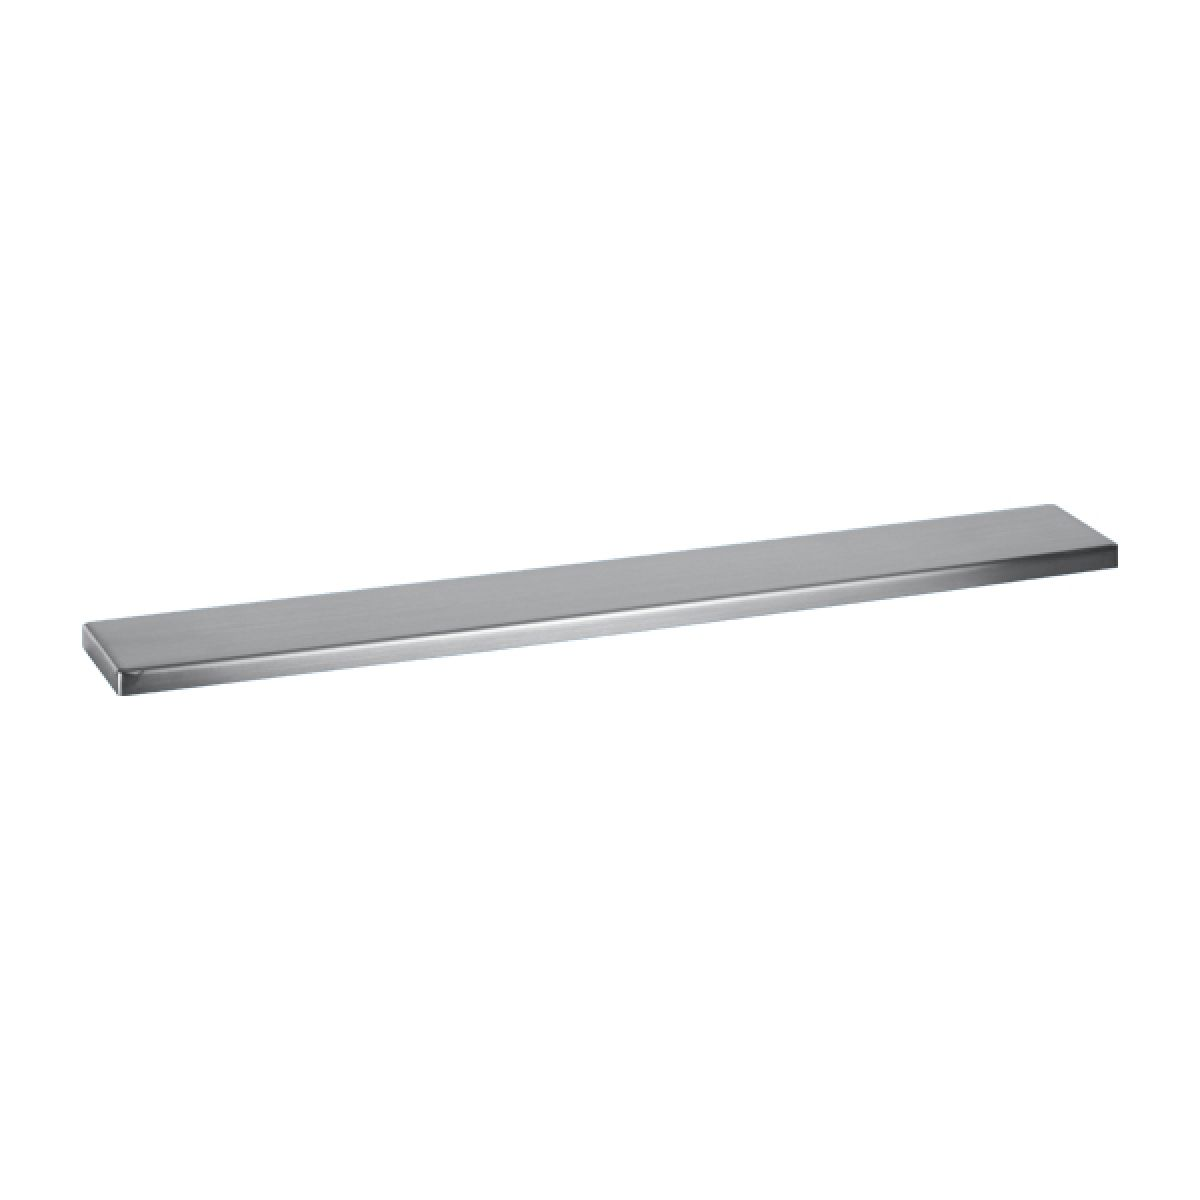 McAlpine COV800-B 800mm Channel Drain Brushed Cover Plate